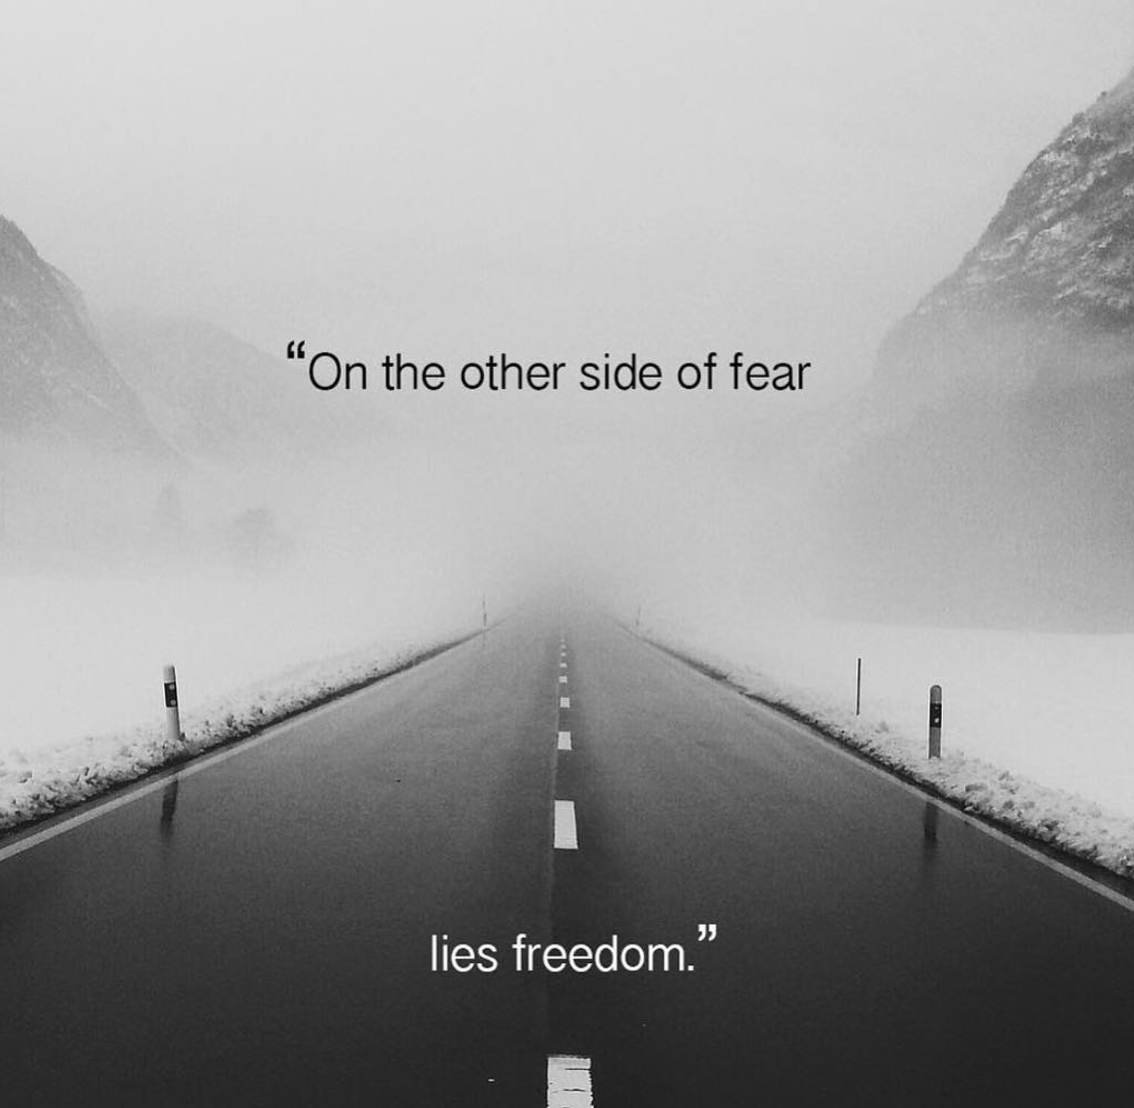 [Image] On the other side of fear, lies freedom. -unknown